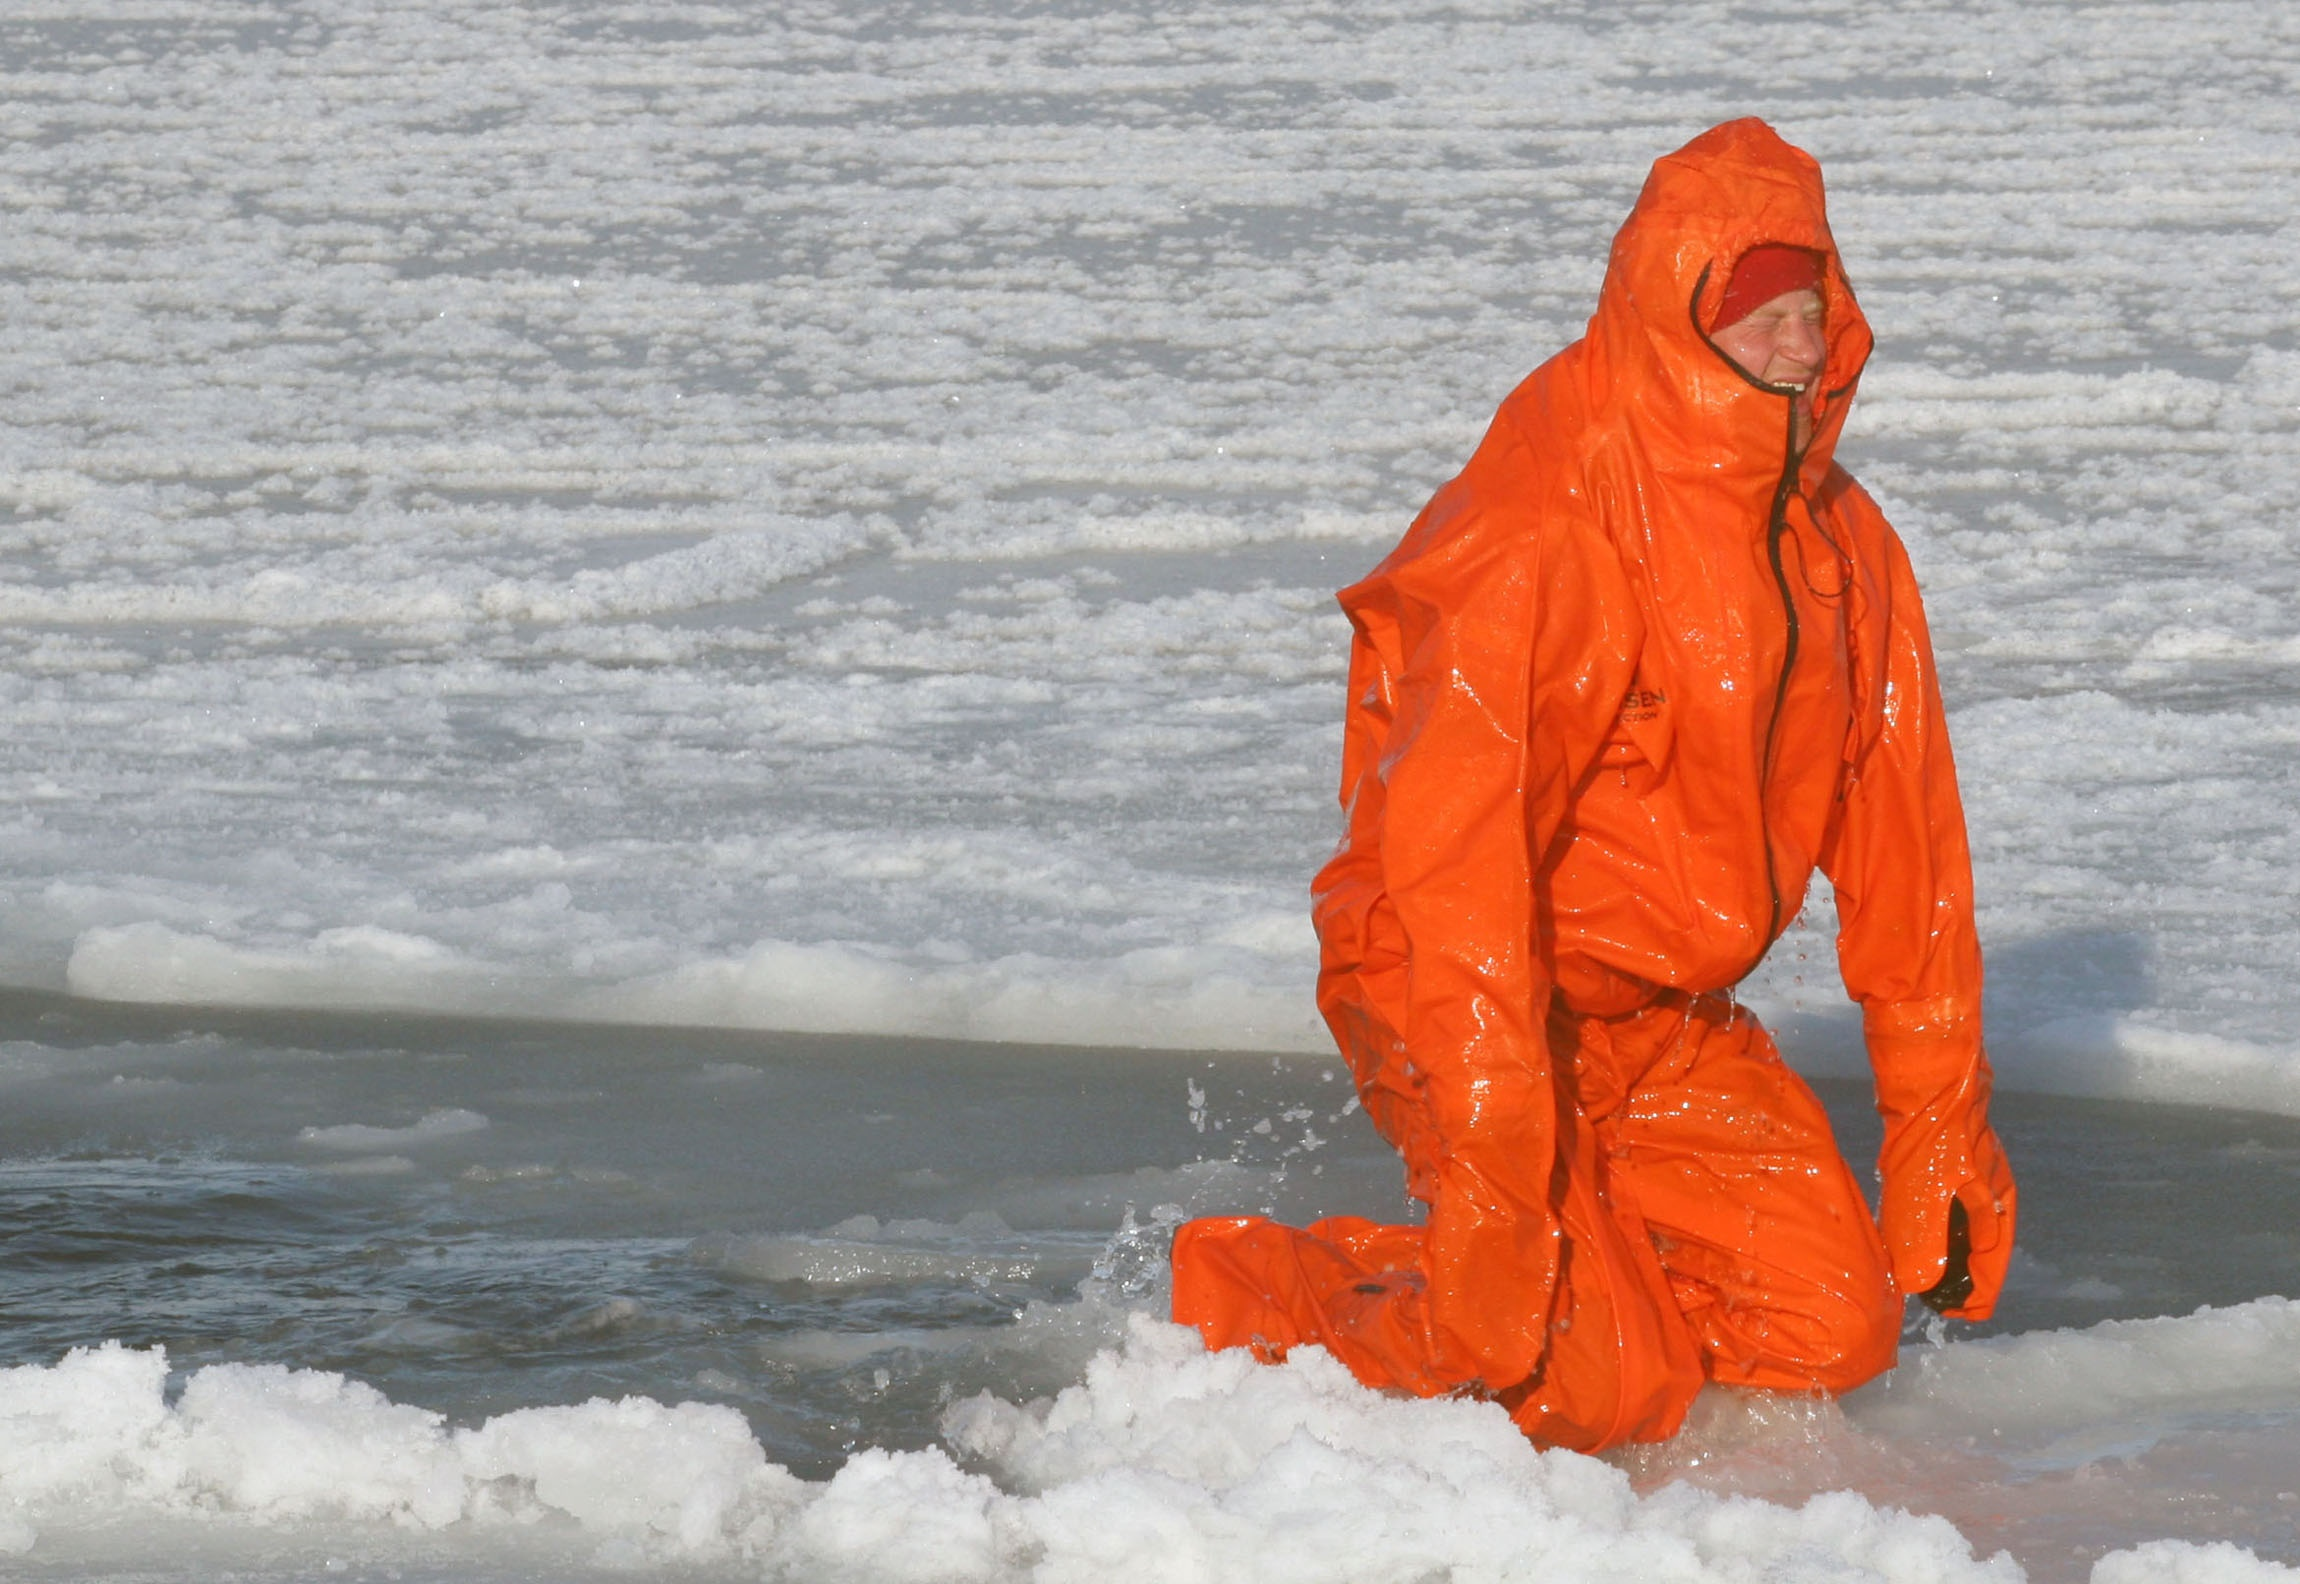 Prince Harry tries wearing an immersion suit on the island of Spitsbergen, between the Norwegian mainland and the North Pole, on March 30, 2011.